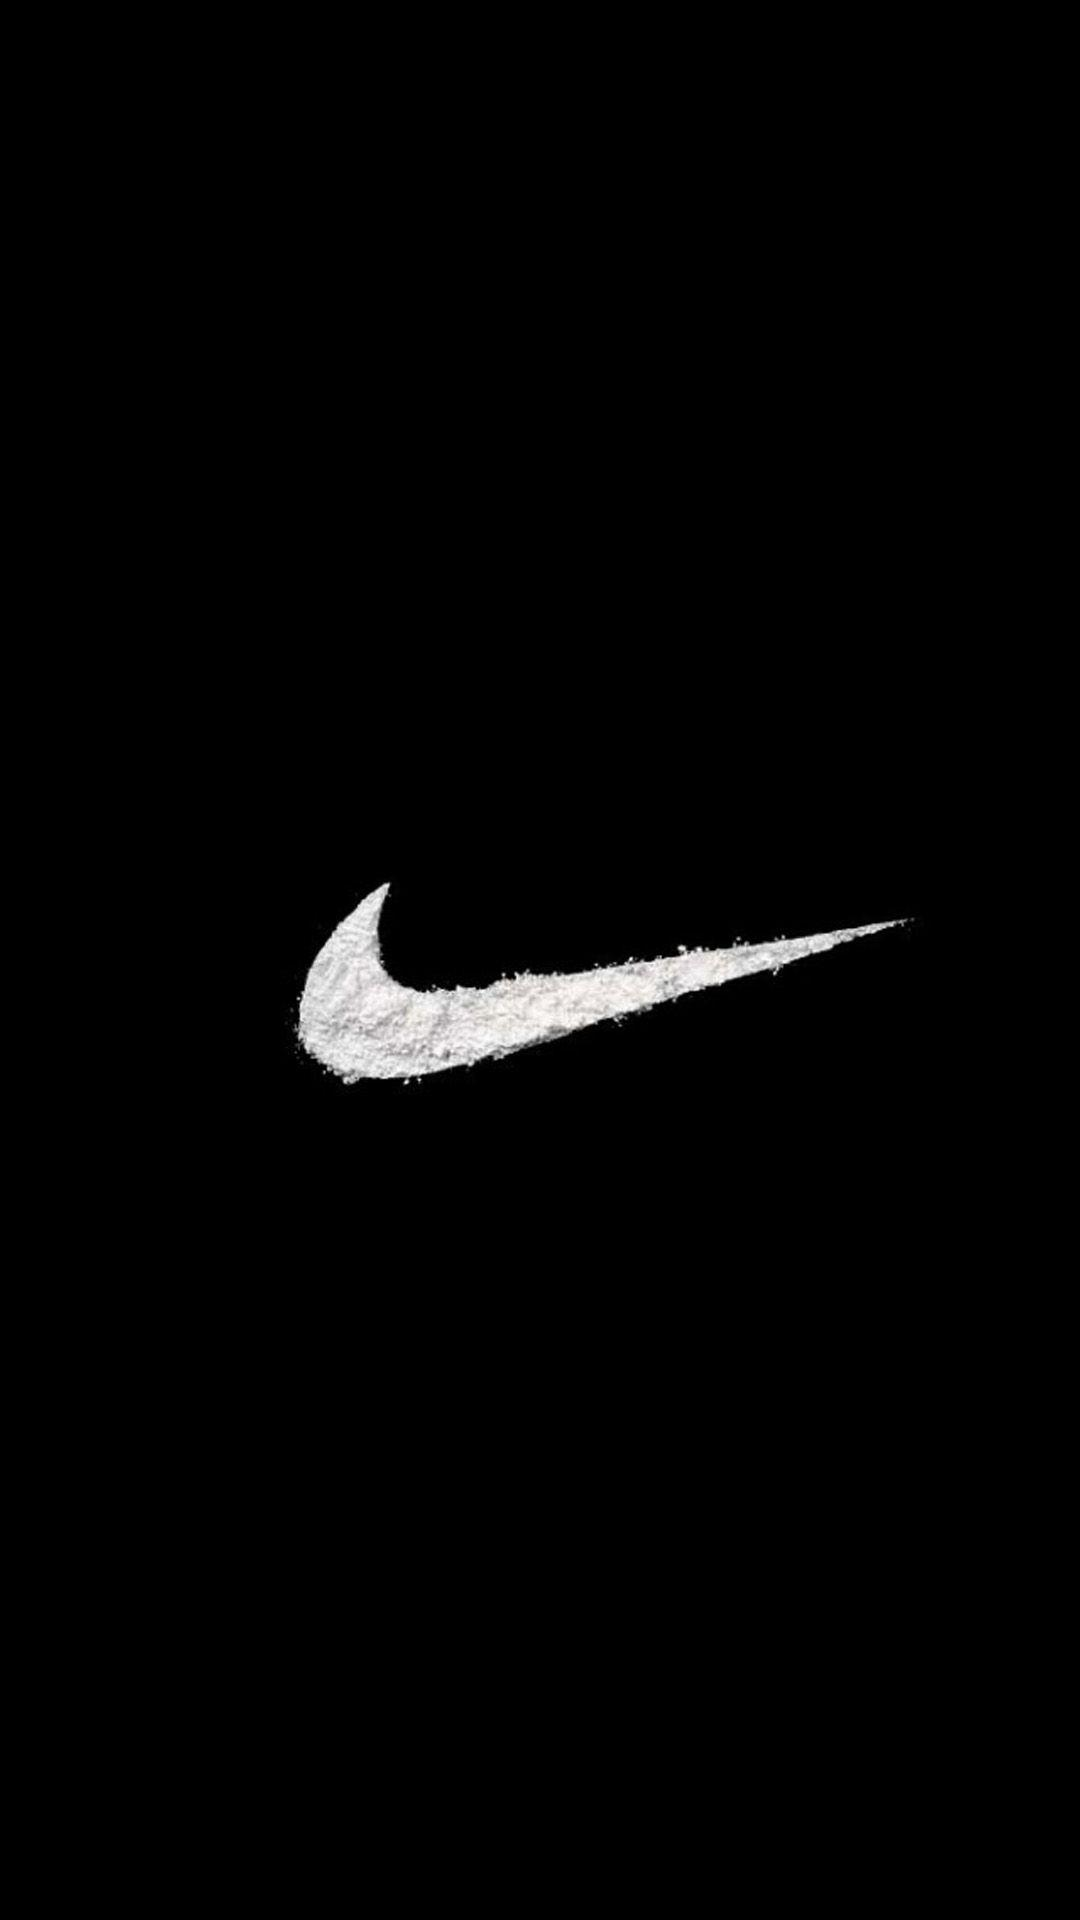 Download Free Nike Wallpapers for Iphone